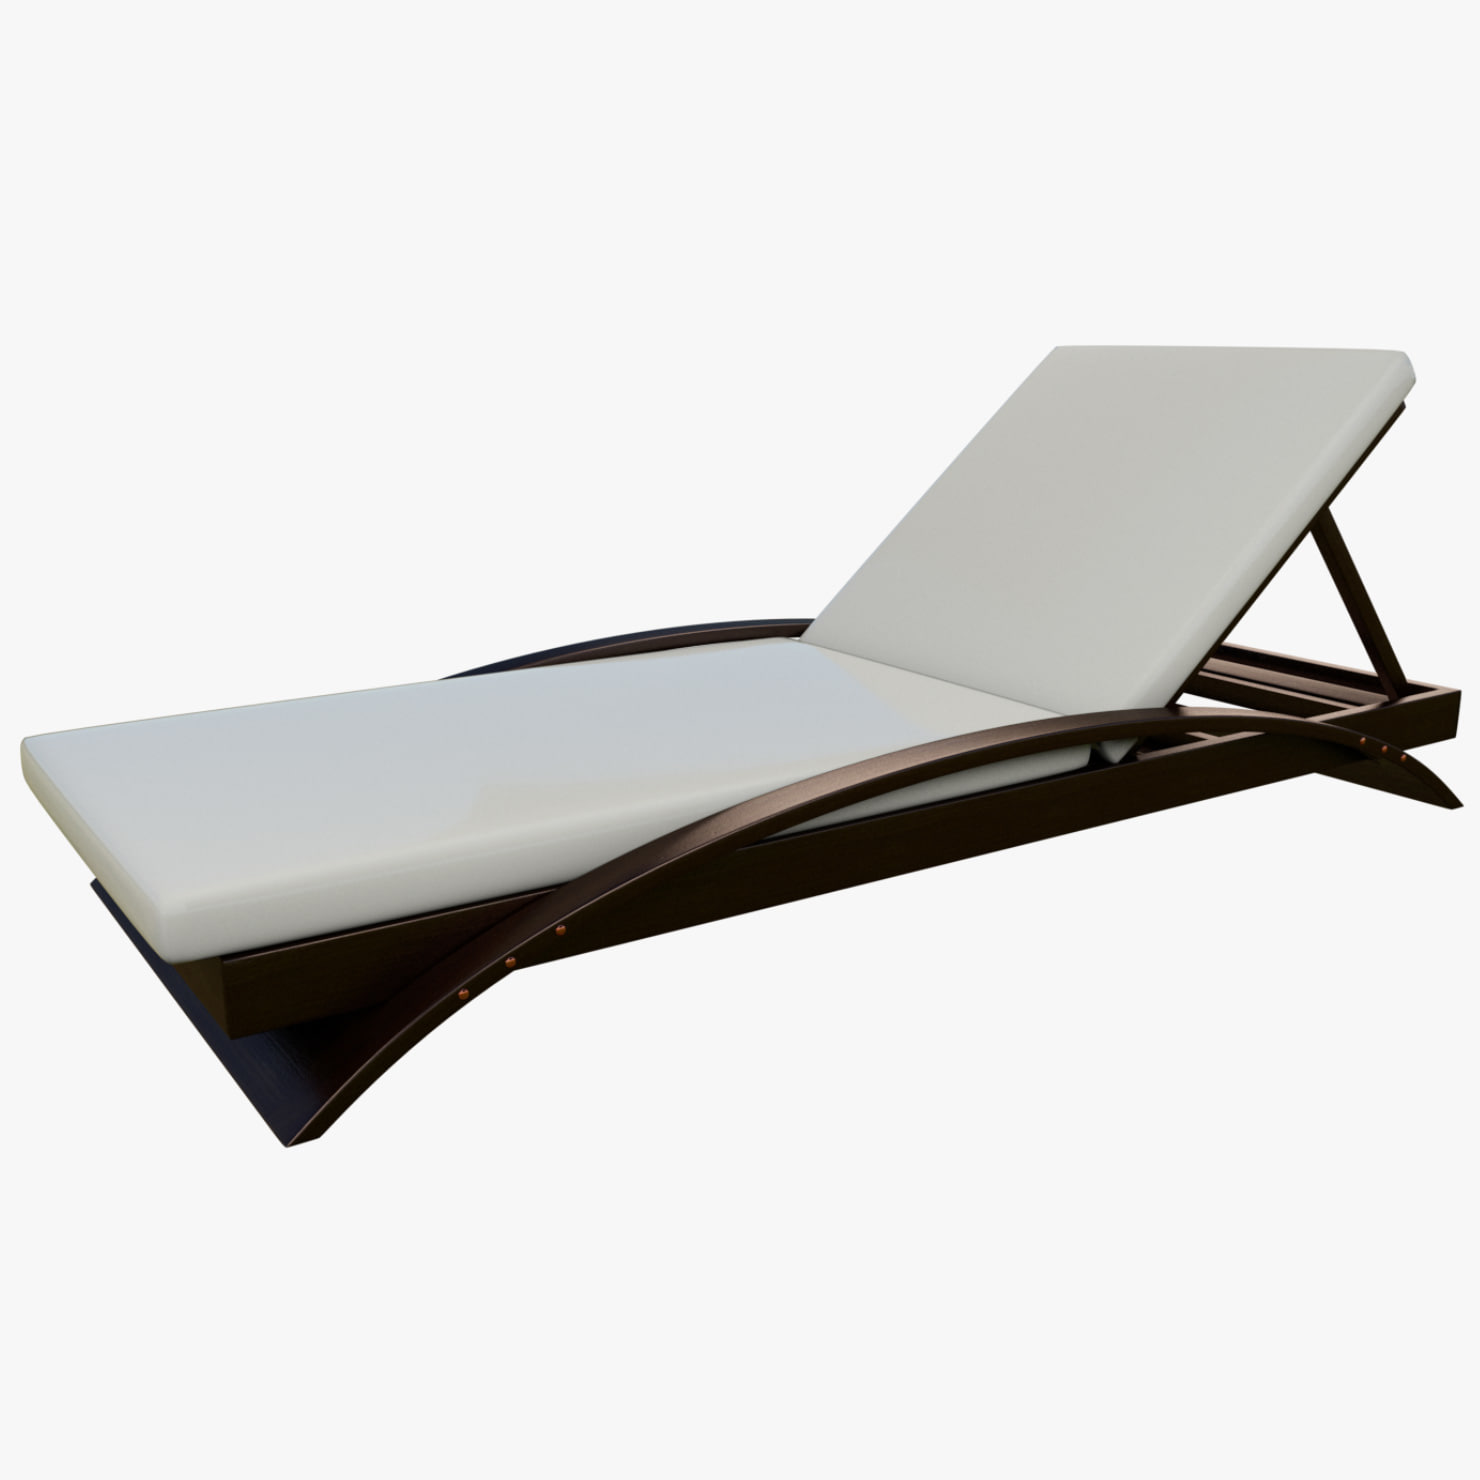 Pool lounge chair 3D model TurboSquid